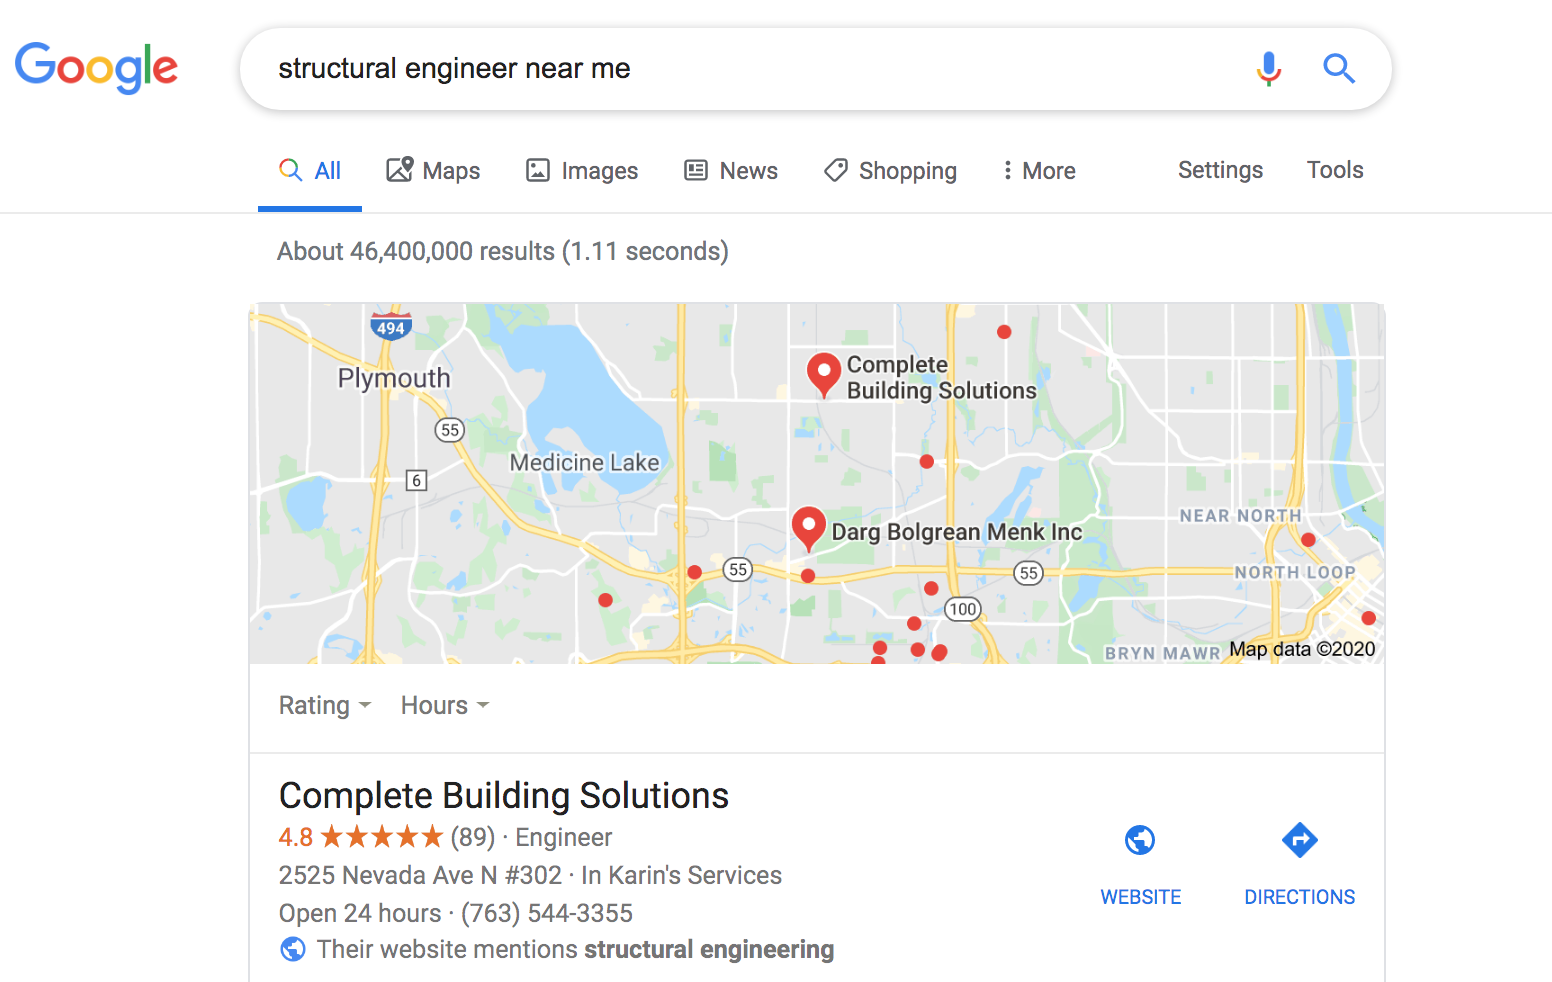 Google structural engineer near me